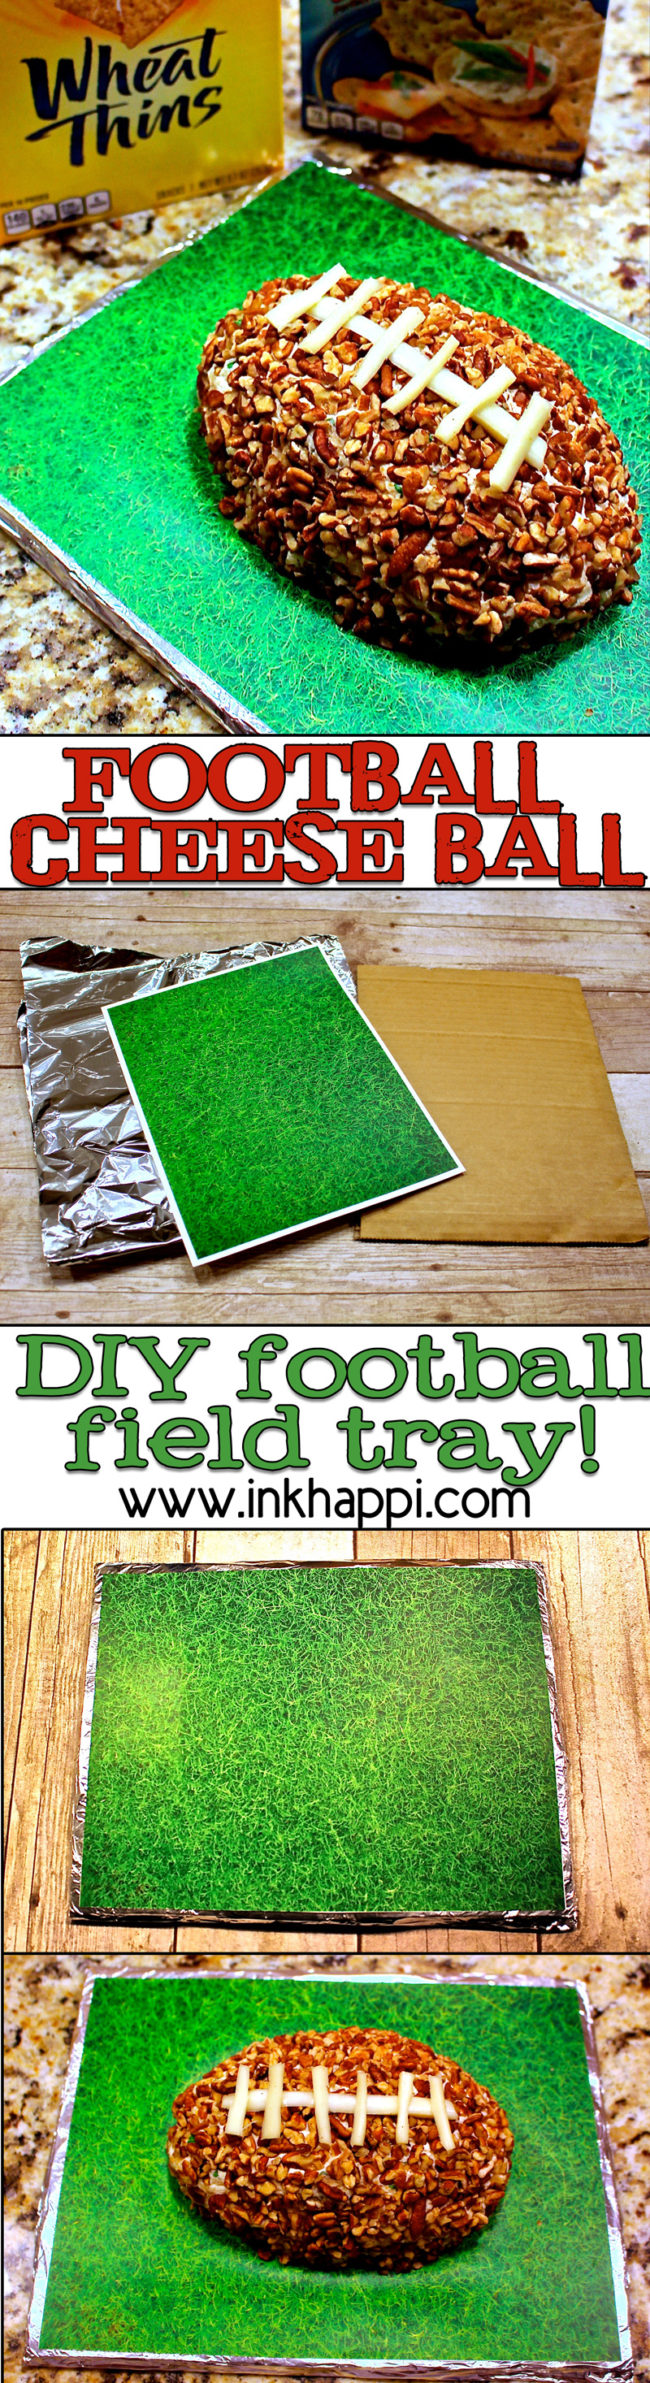 How to make a football cheese ball and a diy grass serving try. The hit of the party!